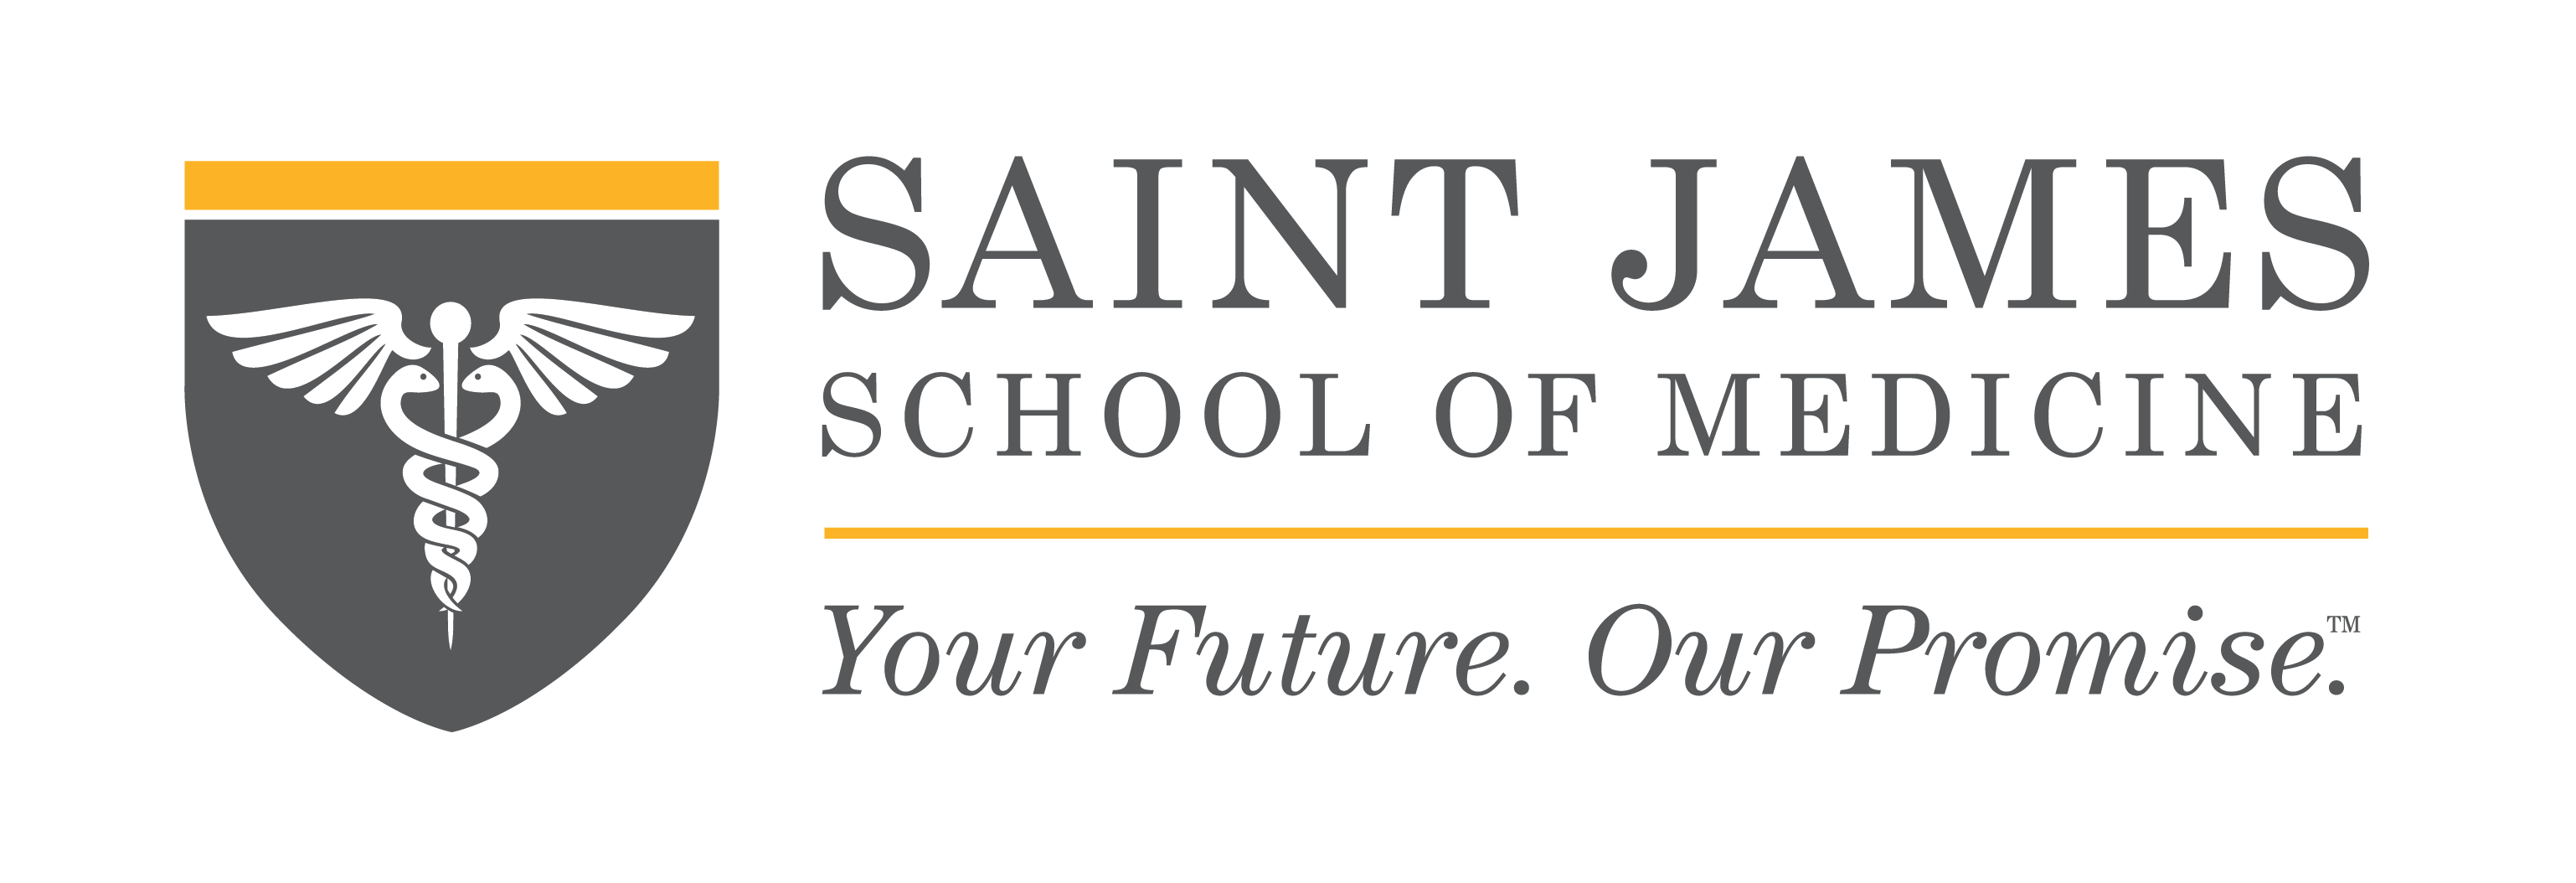 Saint James School of Medicine banner